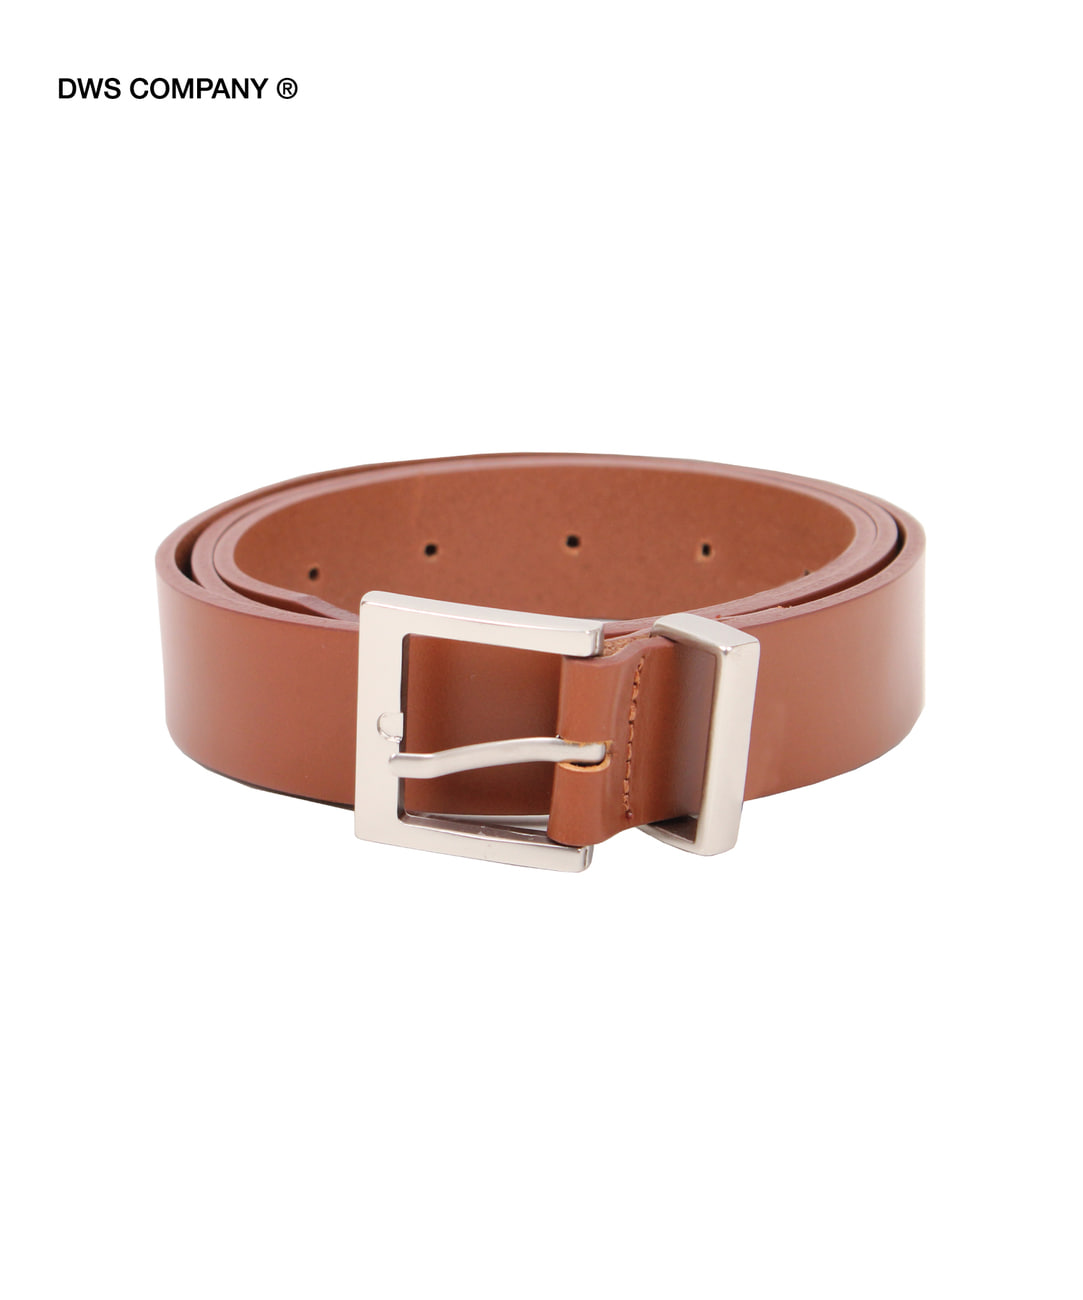 DWS SQUARE LEATHER BELT(BROWN)